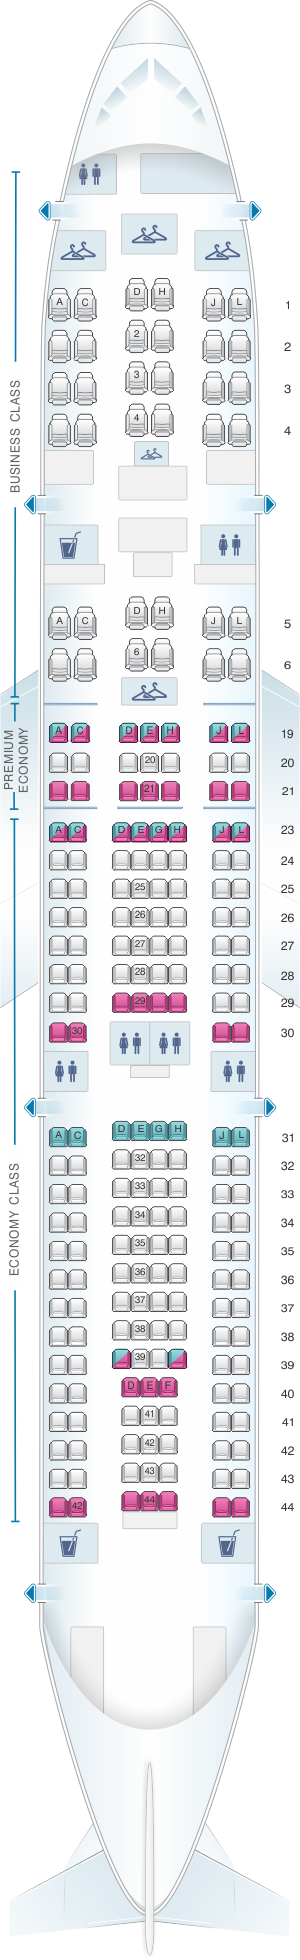 Seat map for Air France Airbus A330 200 224PAX